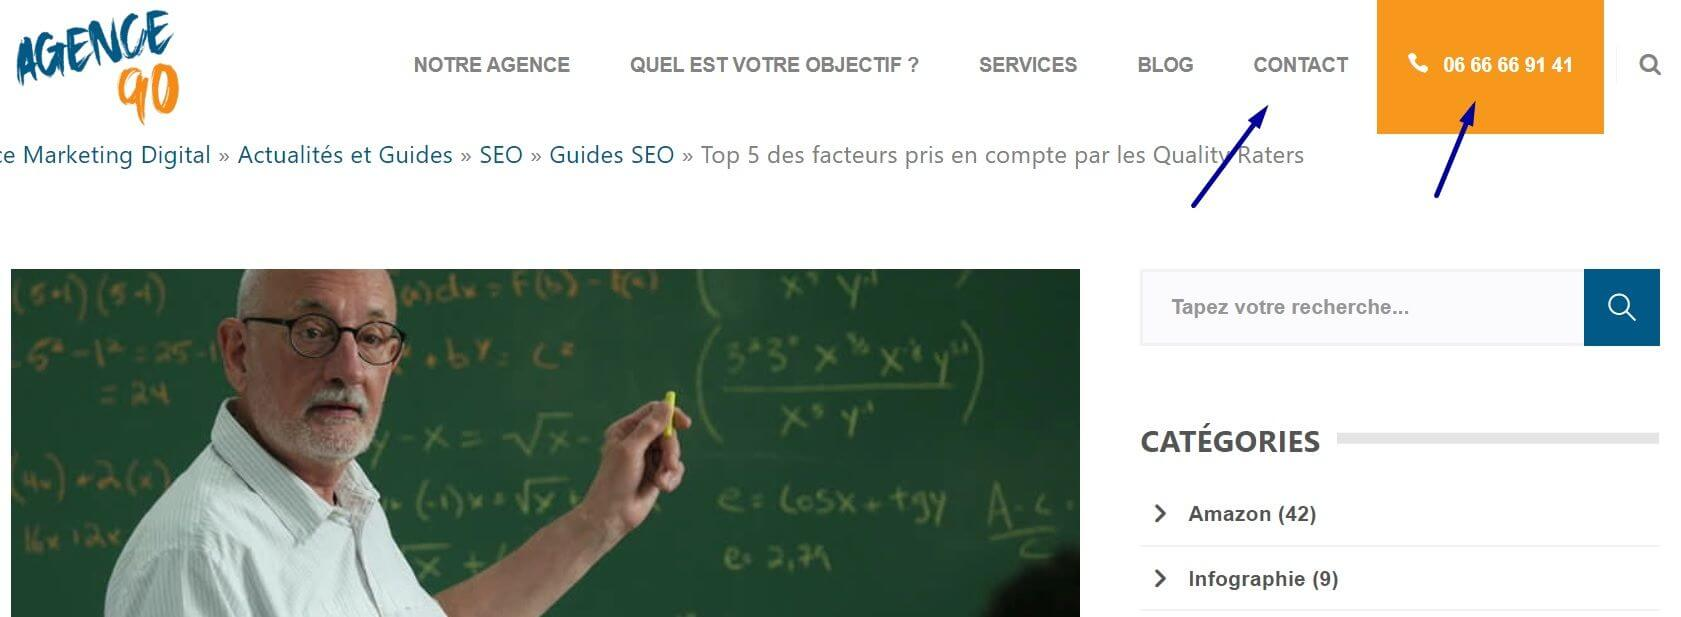 exemples-contact-agence-90